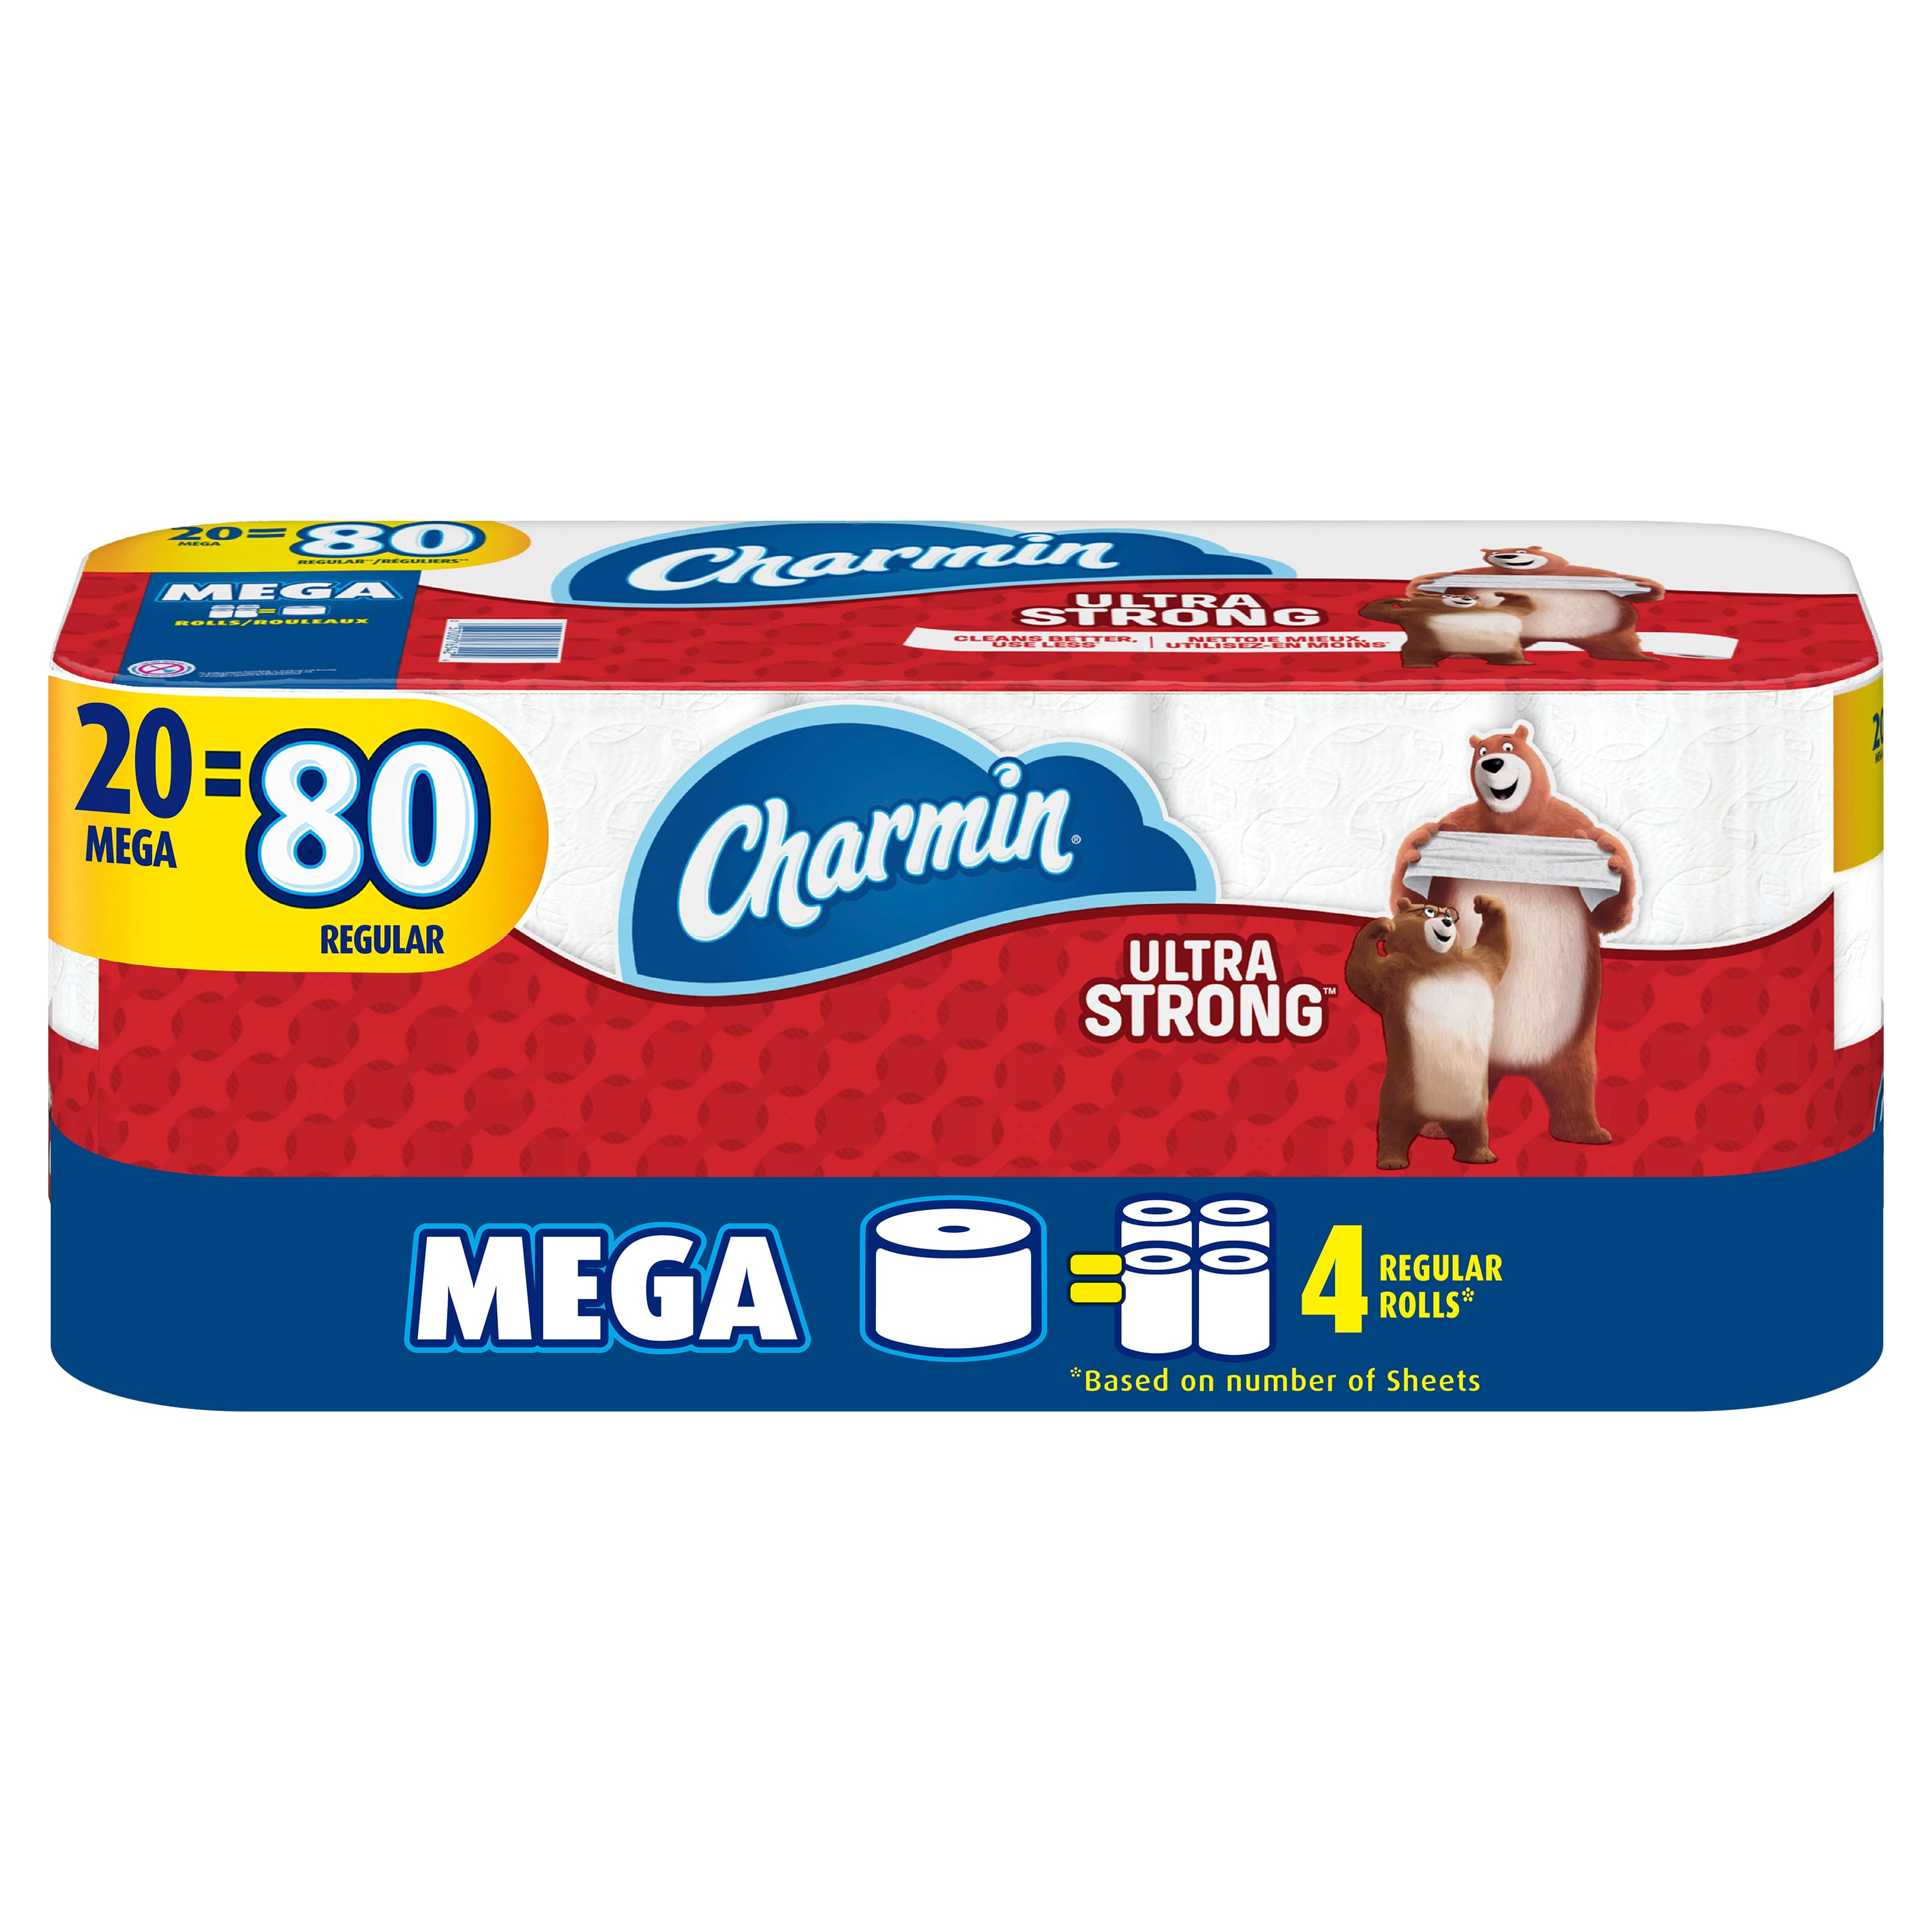 Charmin toilet paper in stock for shipping at Walmart $19.92 regional ymmv